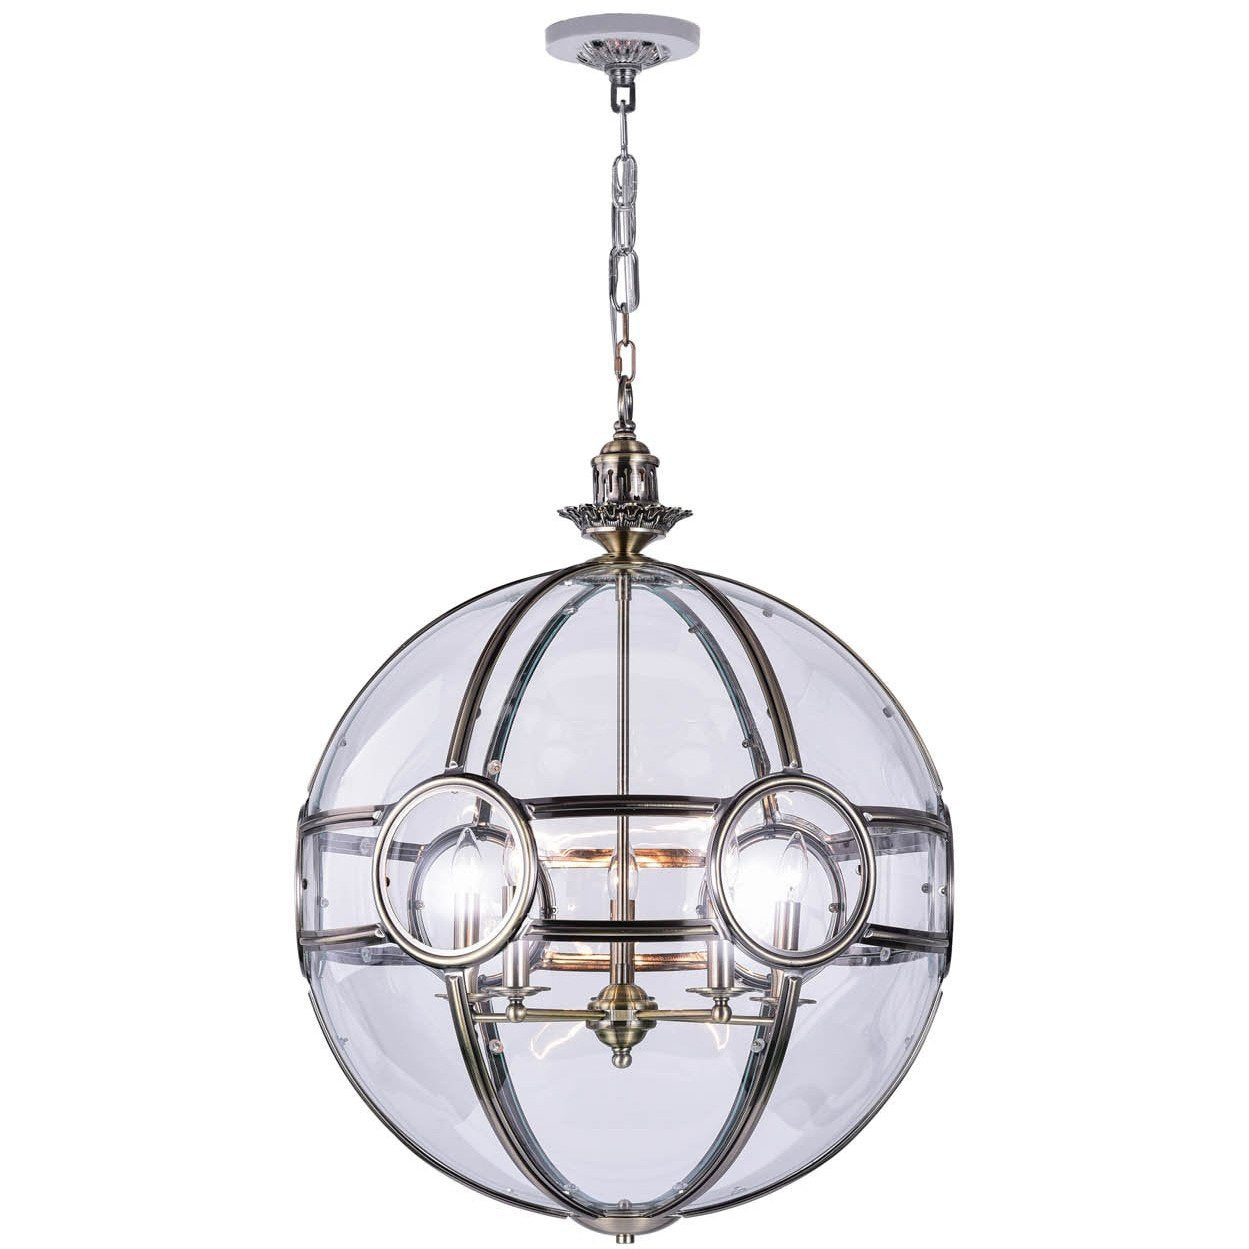 CWI Lighting Pendants Antique Brass Beas 5 Light Chandelier with Antique Brass Finish by CWI Lighting 9696P25-5-604